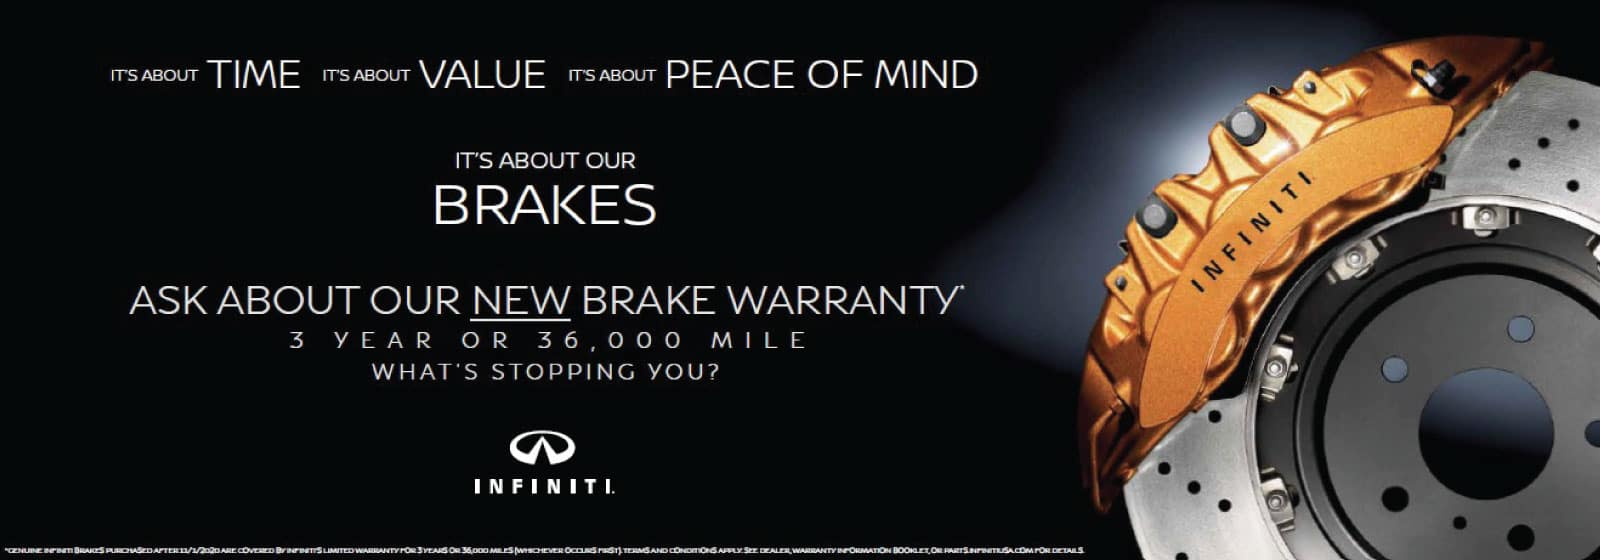 It's about TIME. It's about VALUE. It's about PEACE OF MIND It's about our BRAKES ASK ABOUT OUR NEW BRAKE WARRANTY 3 YEAR OR 36,000 MILE WHAT'S STOPPING YOU?